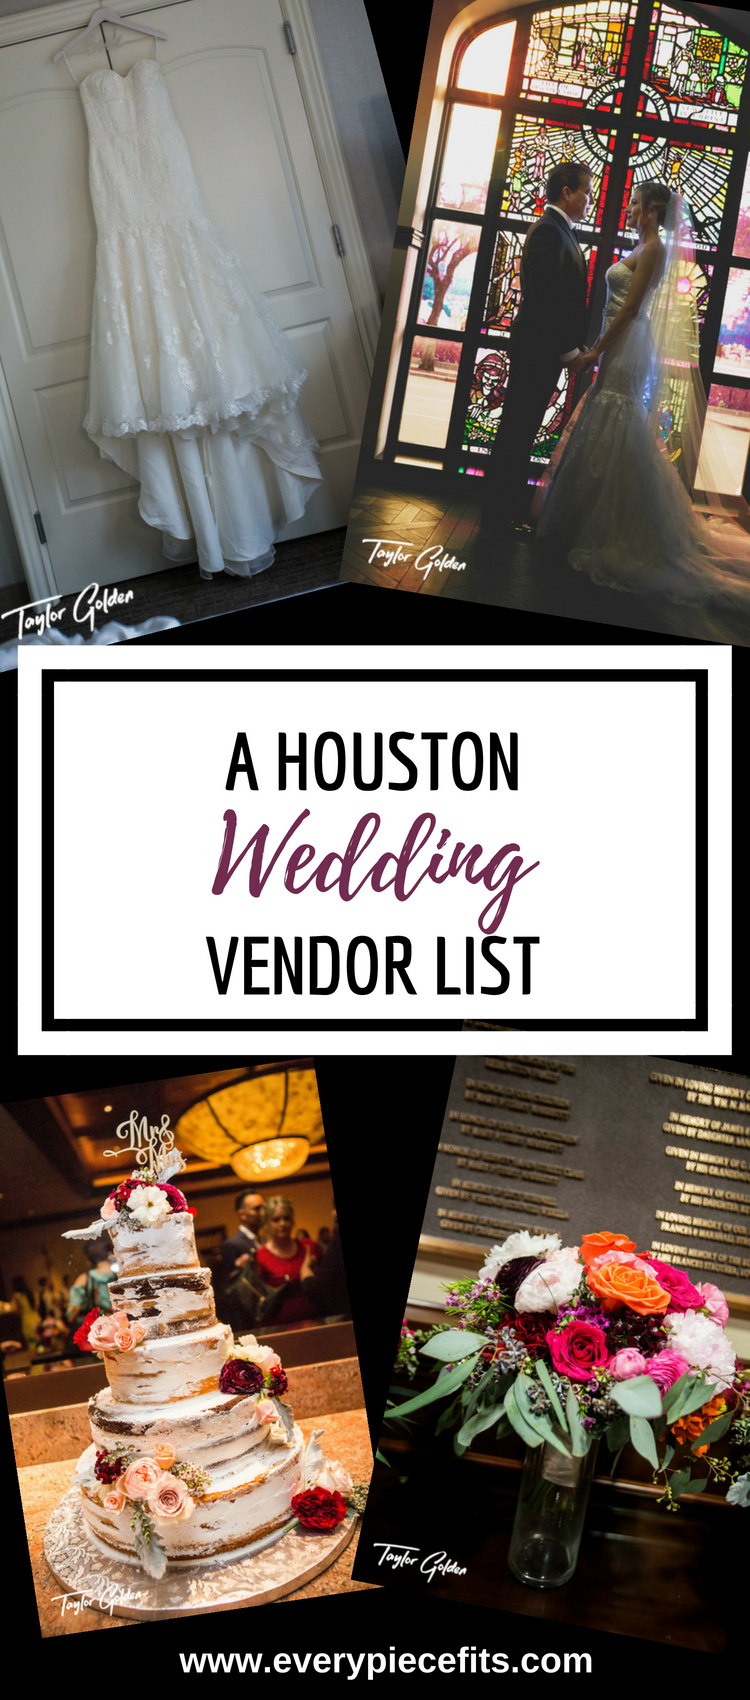 A Houston Wedding_ Vendor List.png